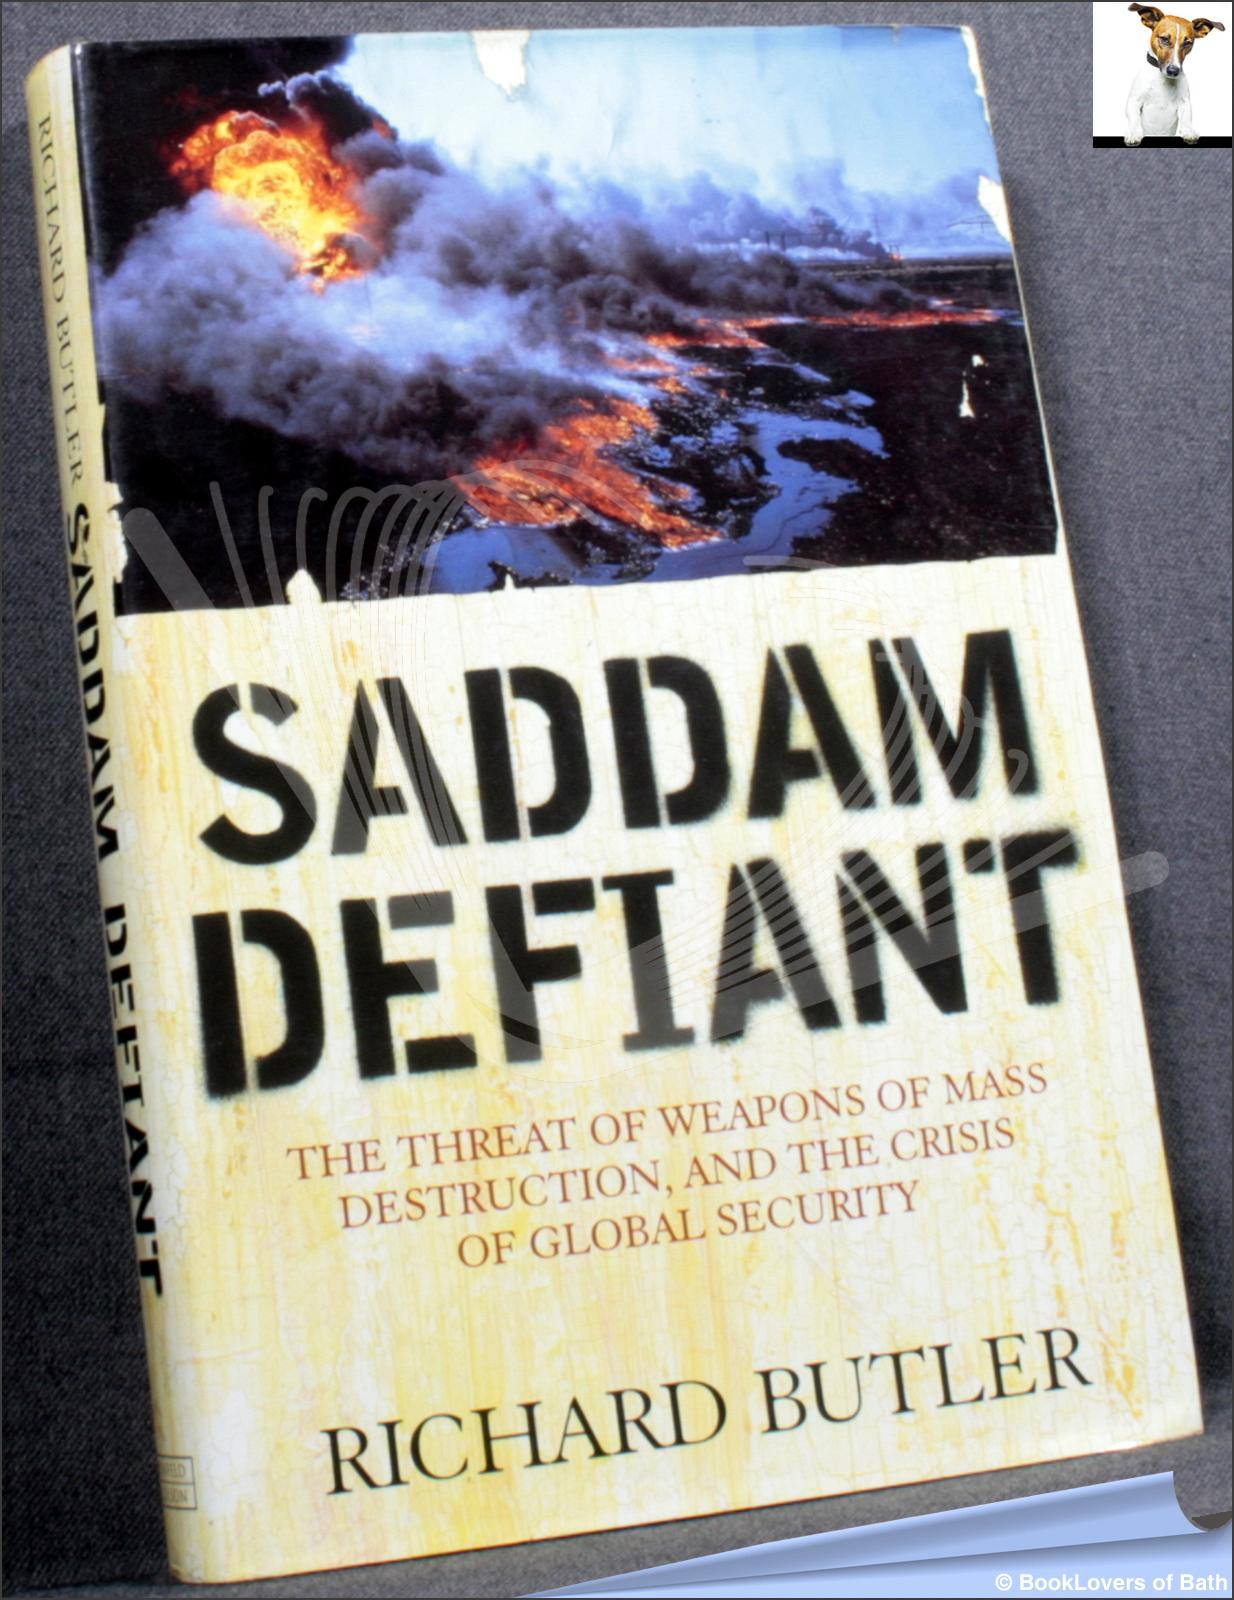 Suddam Defiant: The Treat of Weapons of Mass Destruction and The Crisis of Global Security - Richard Butler